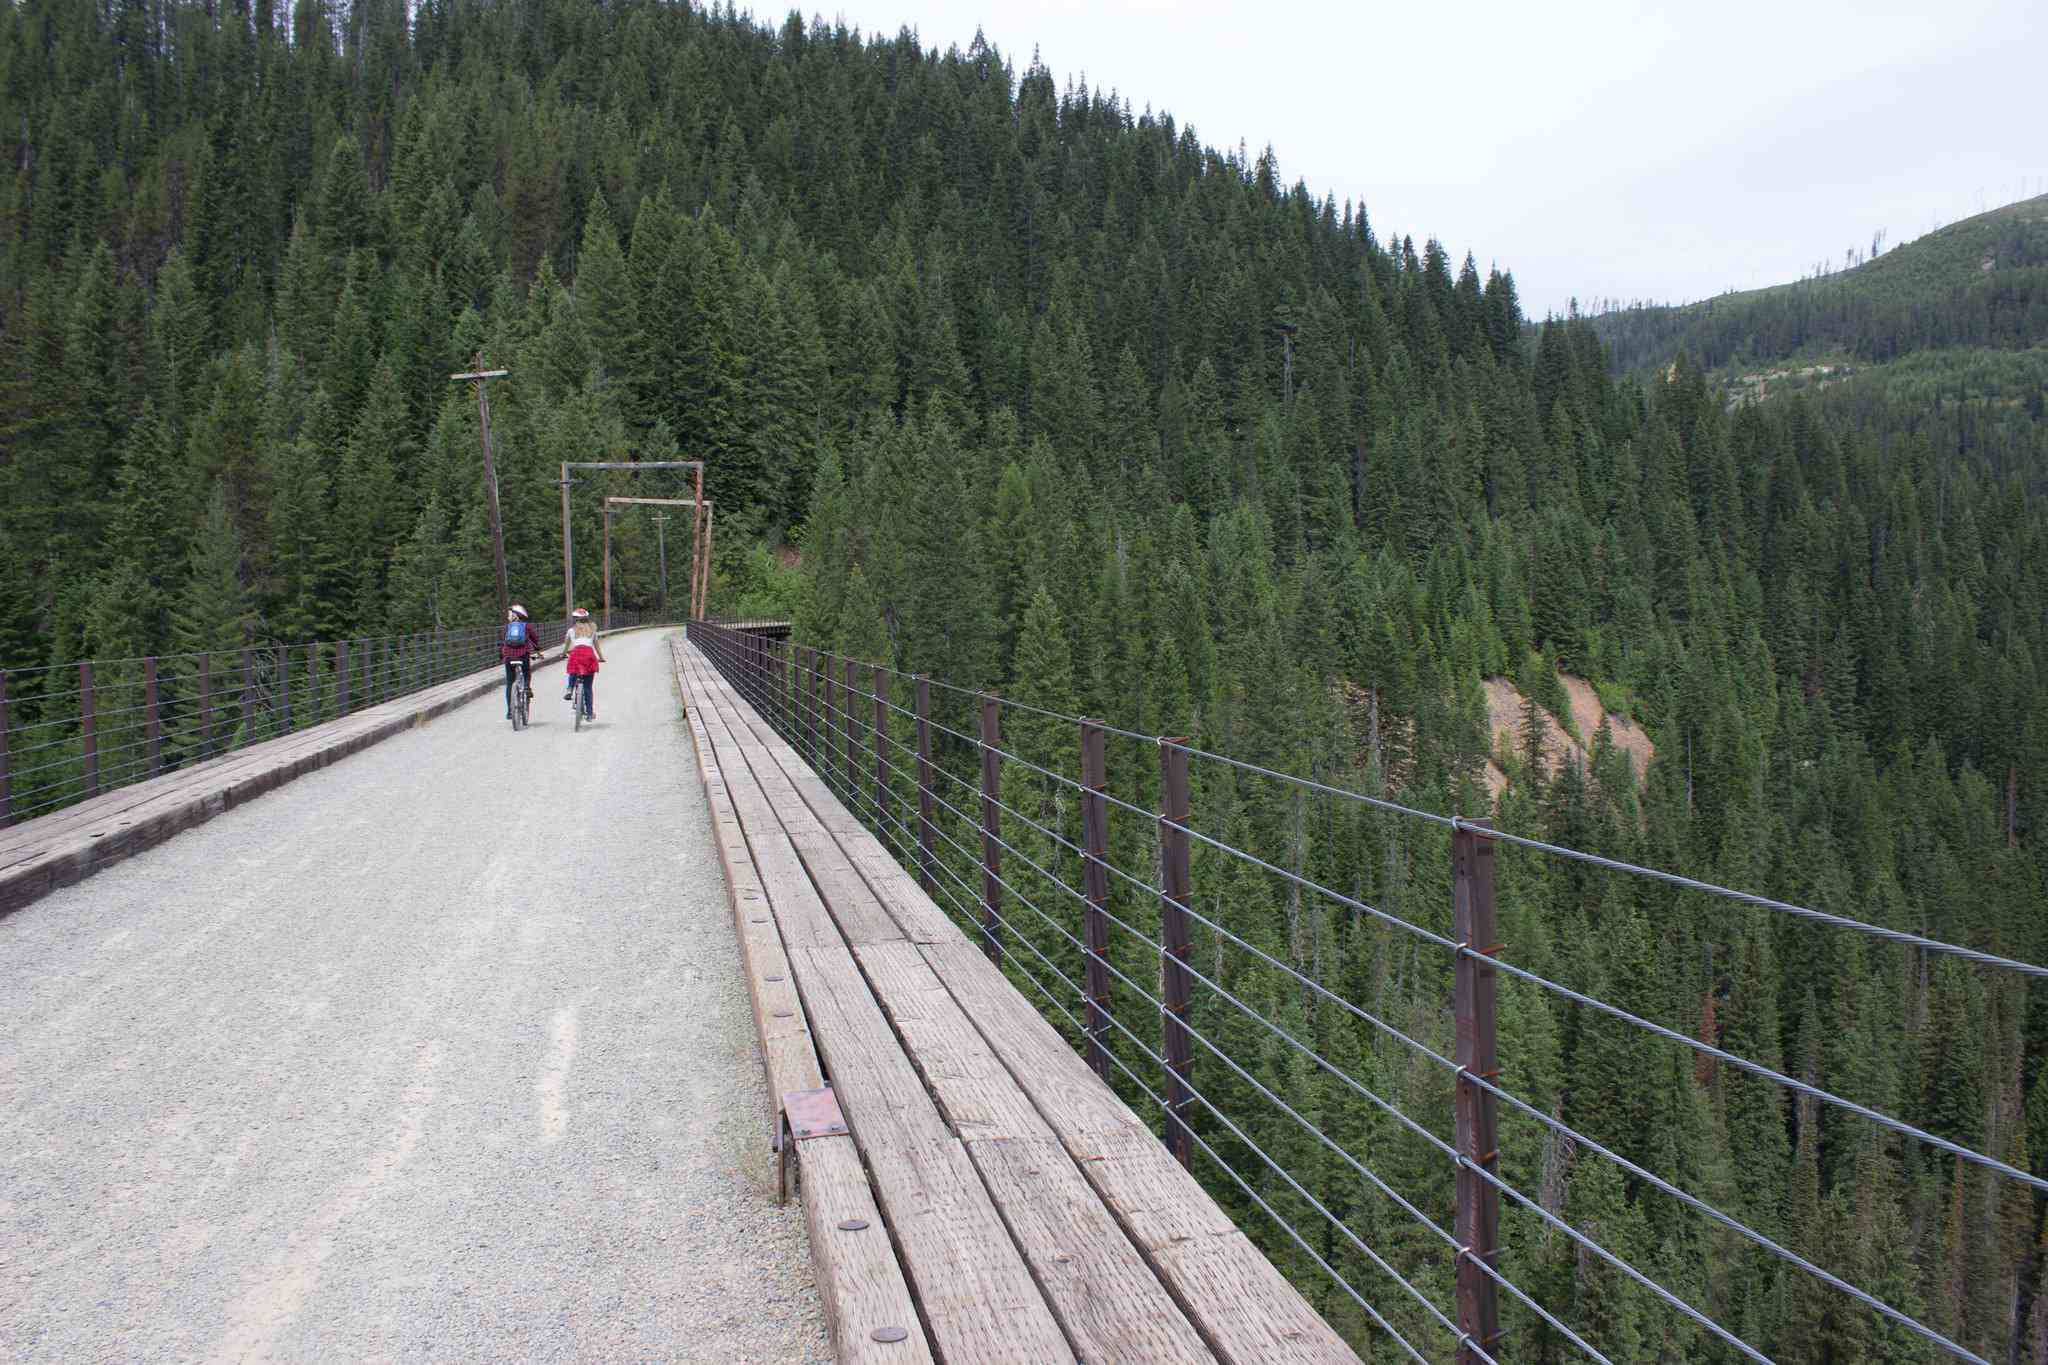 Two people ride their bikes across a high bridge in a pine forest